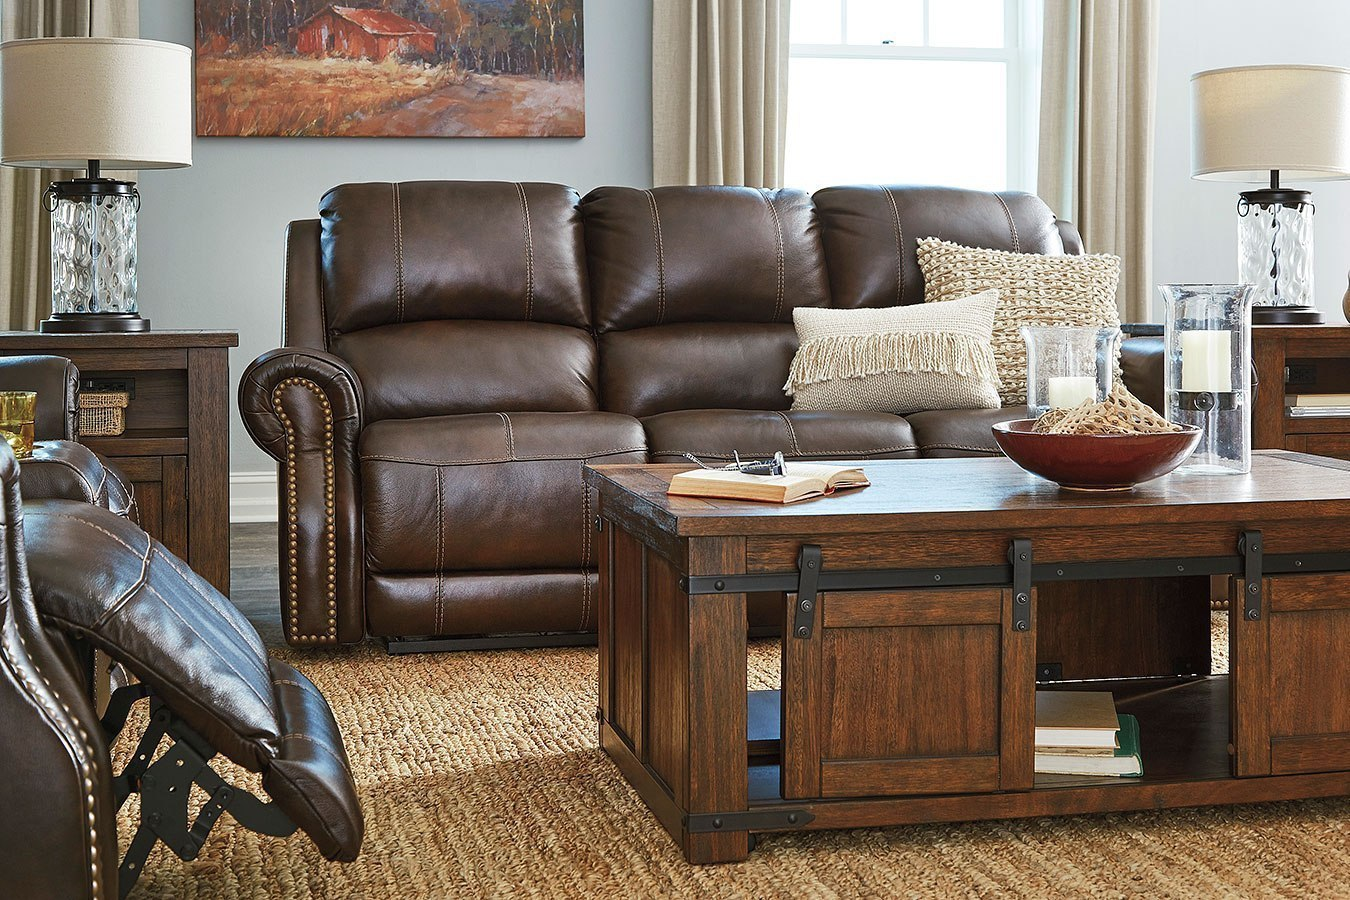 Enjoyable Buncrana Chocolate Power Reclining Living Room Set W Adjustable Headrests Gmtry Best Dining Table And Chair Ideas Images Gmtryco